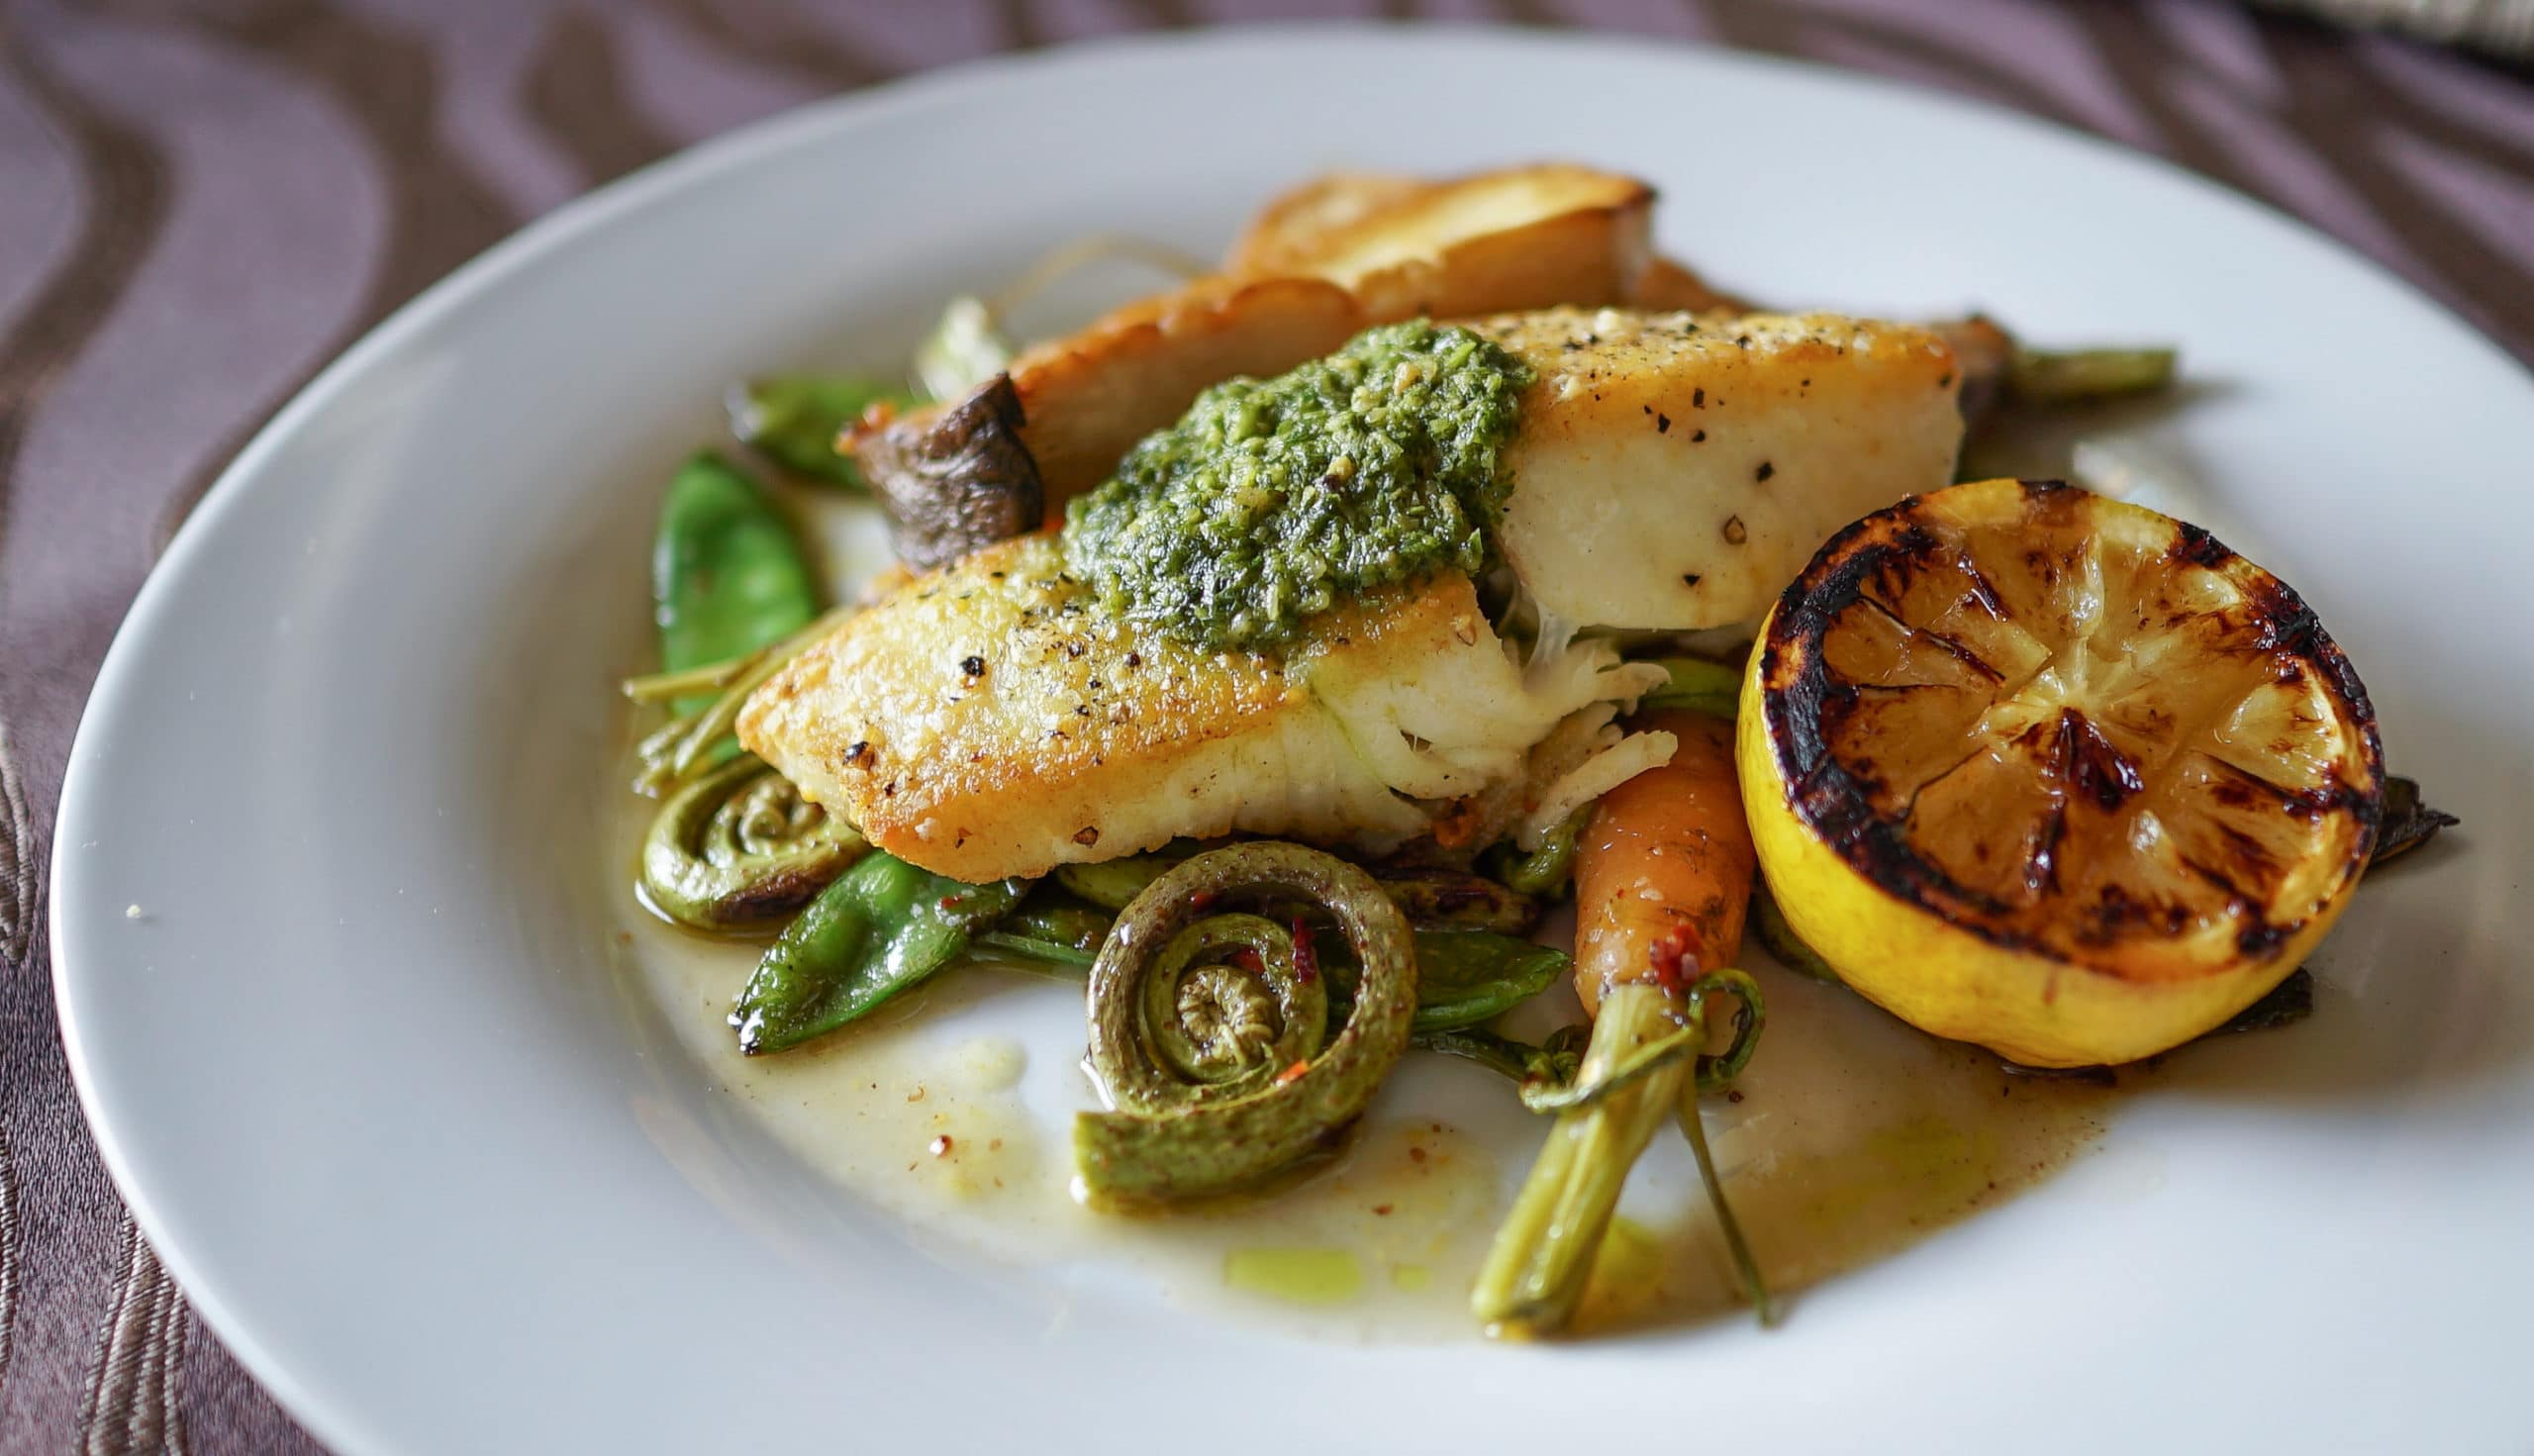 After visiting Pelindaba Lavender Farm, enjoy an exquisite meal at our Coho Restaurant in Friday Harbor